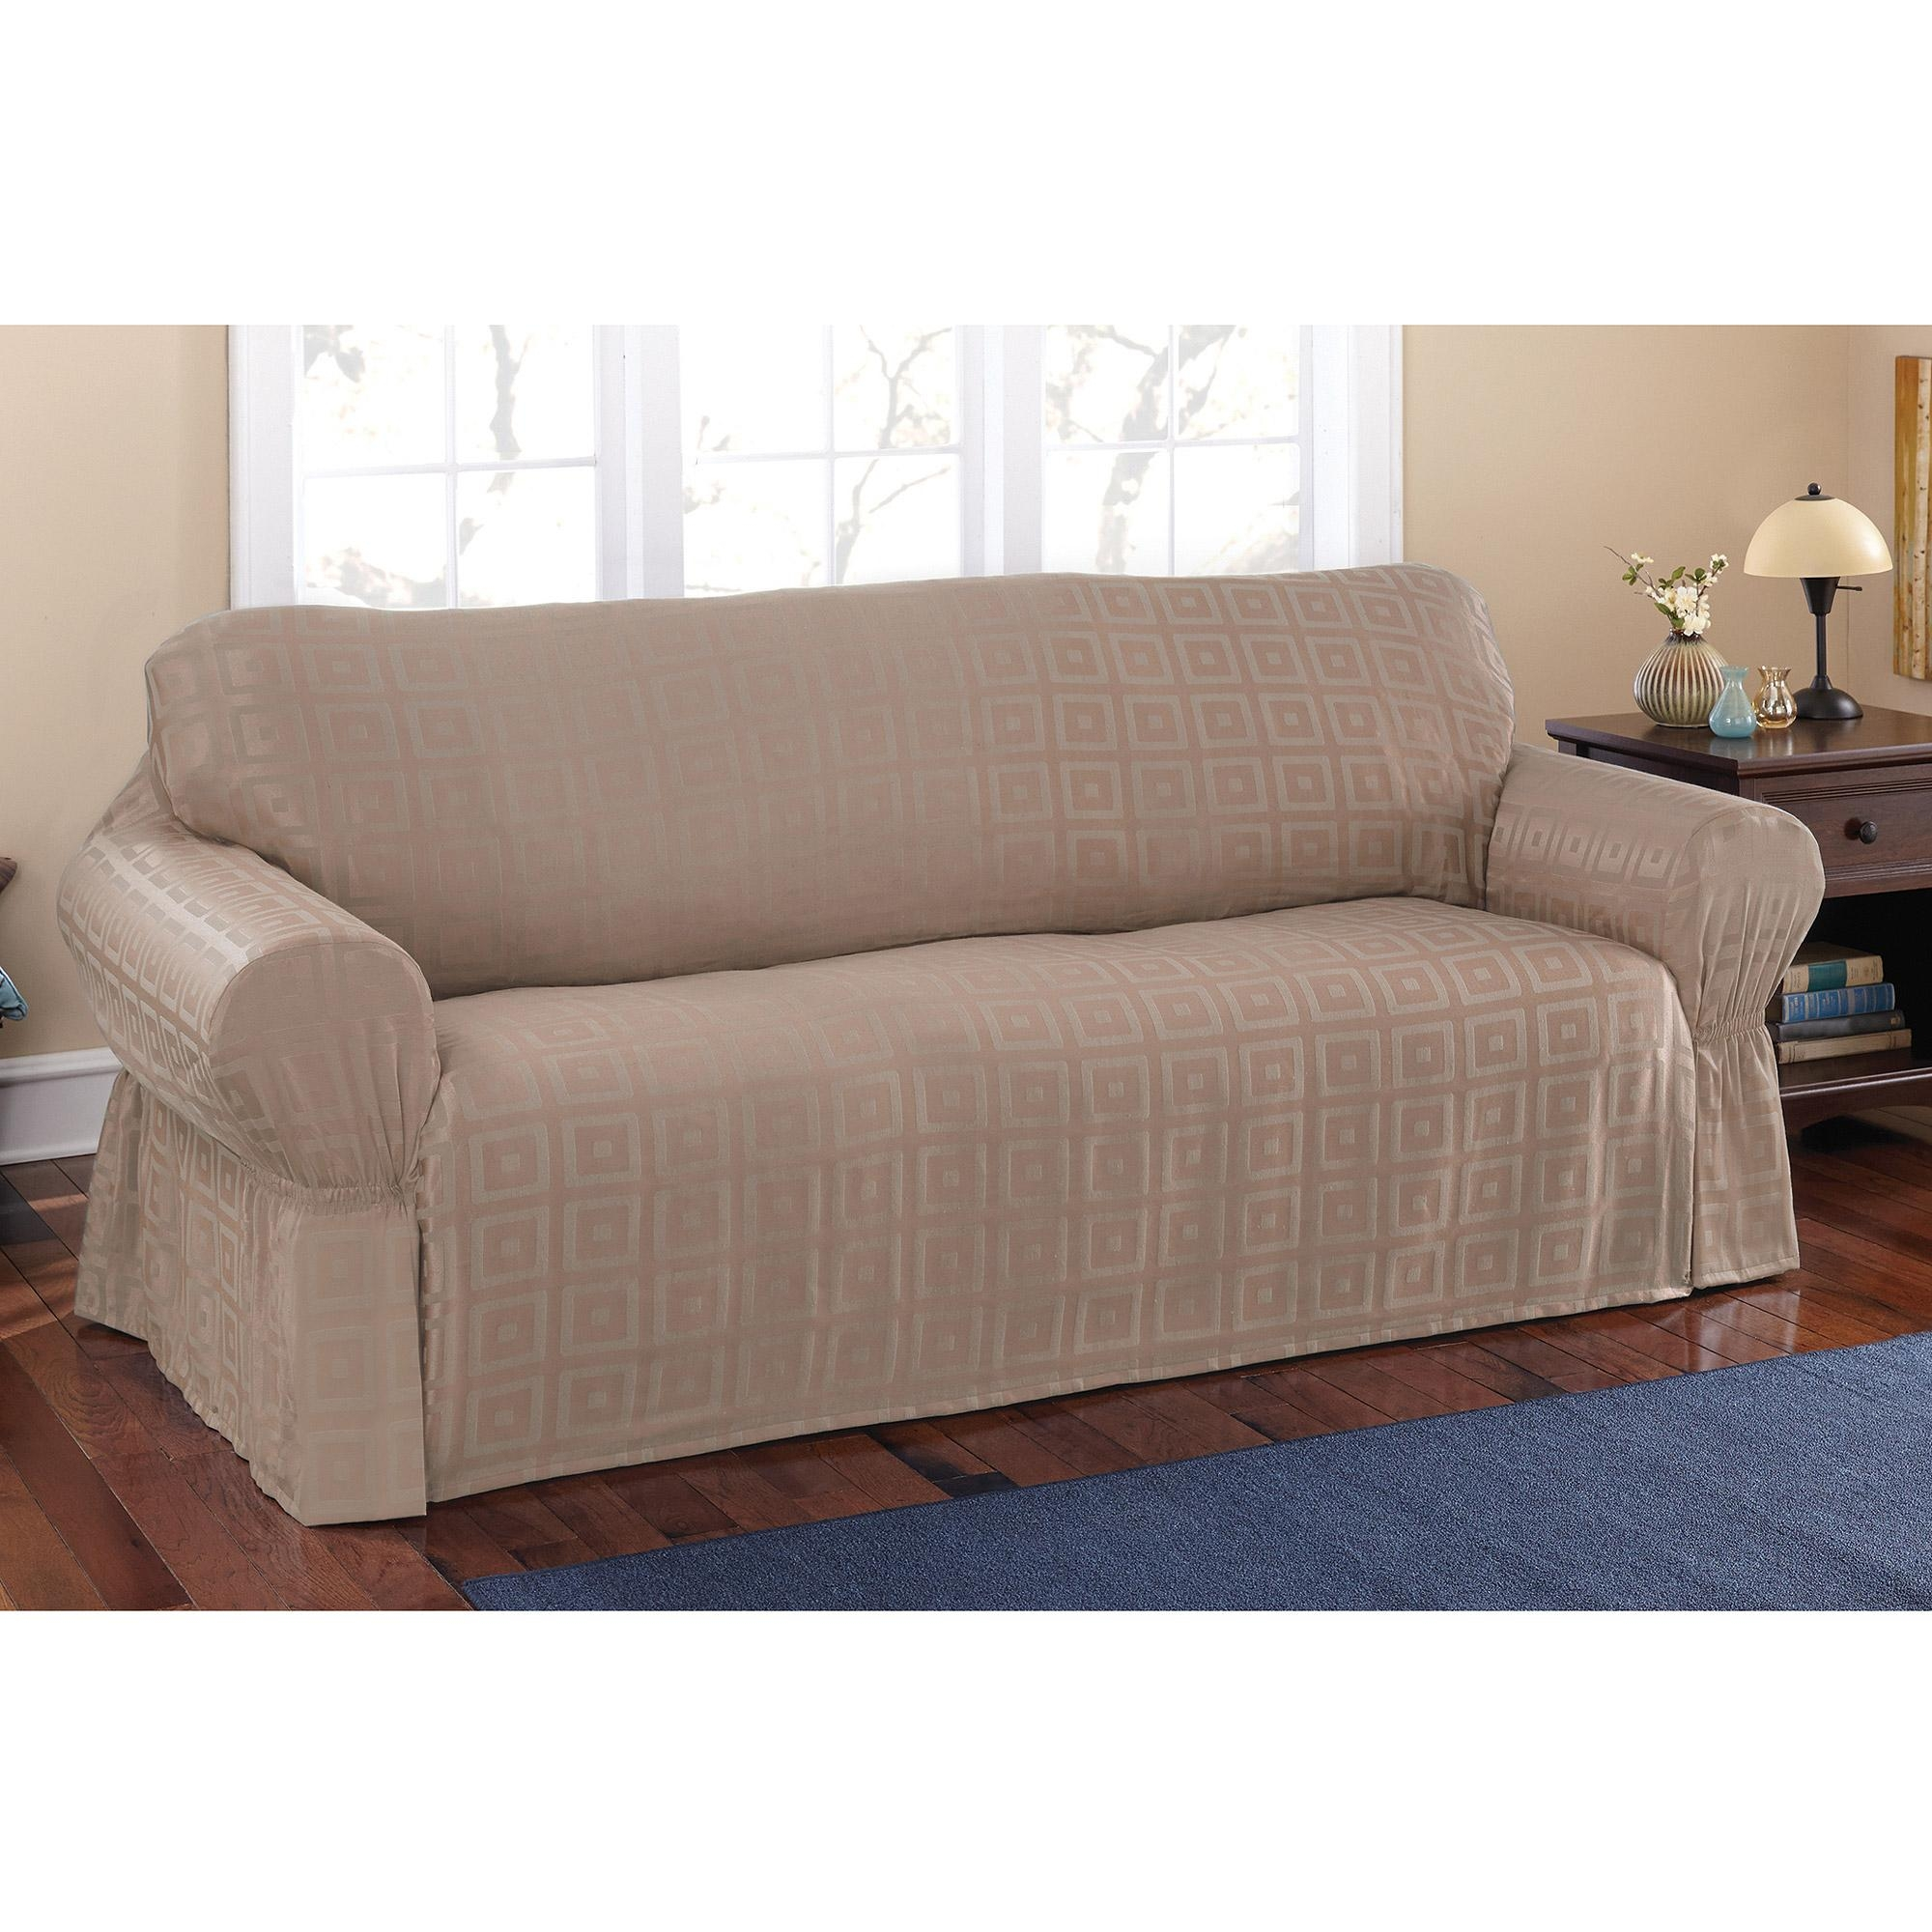 2 Piece Sofa Slipcovers Pertaining To 2 Piece Sofa Covers (View 23 of 27)